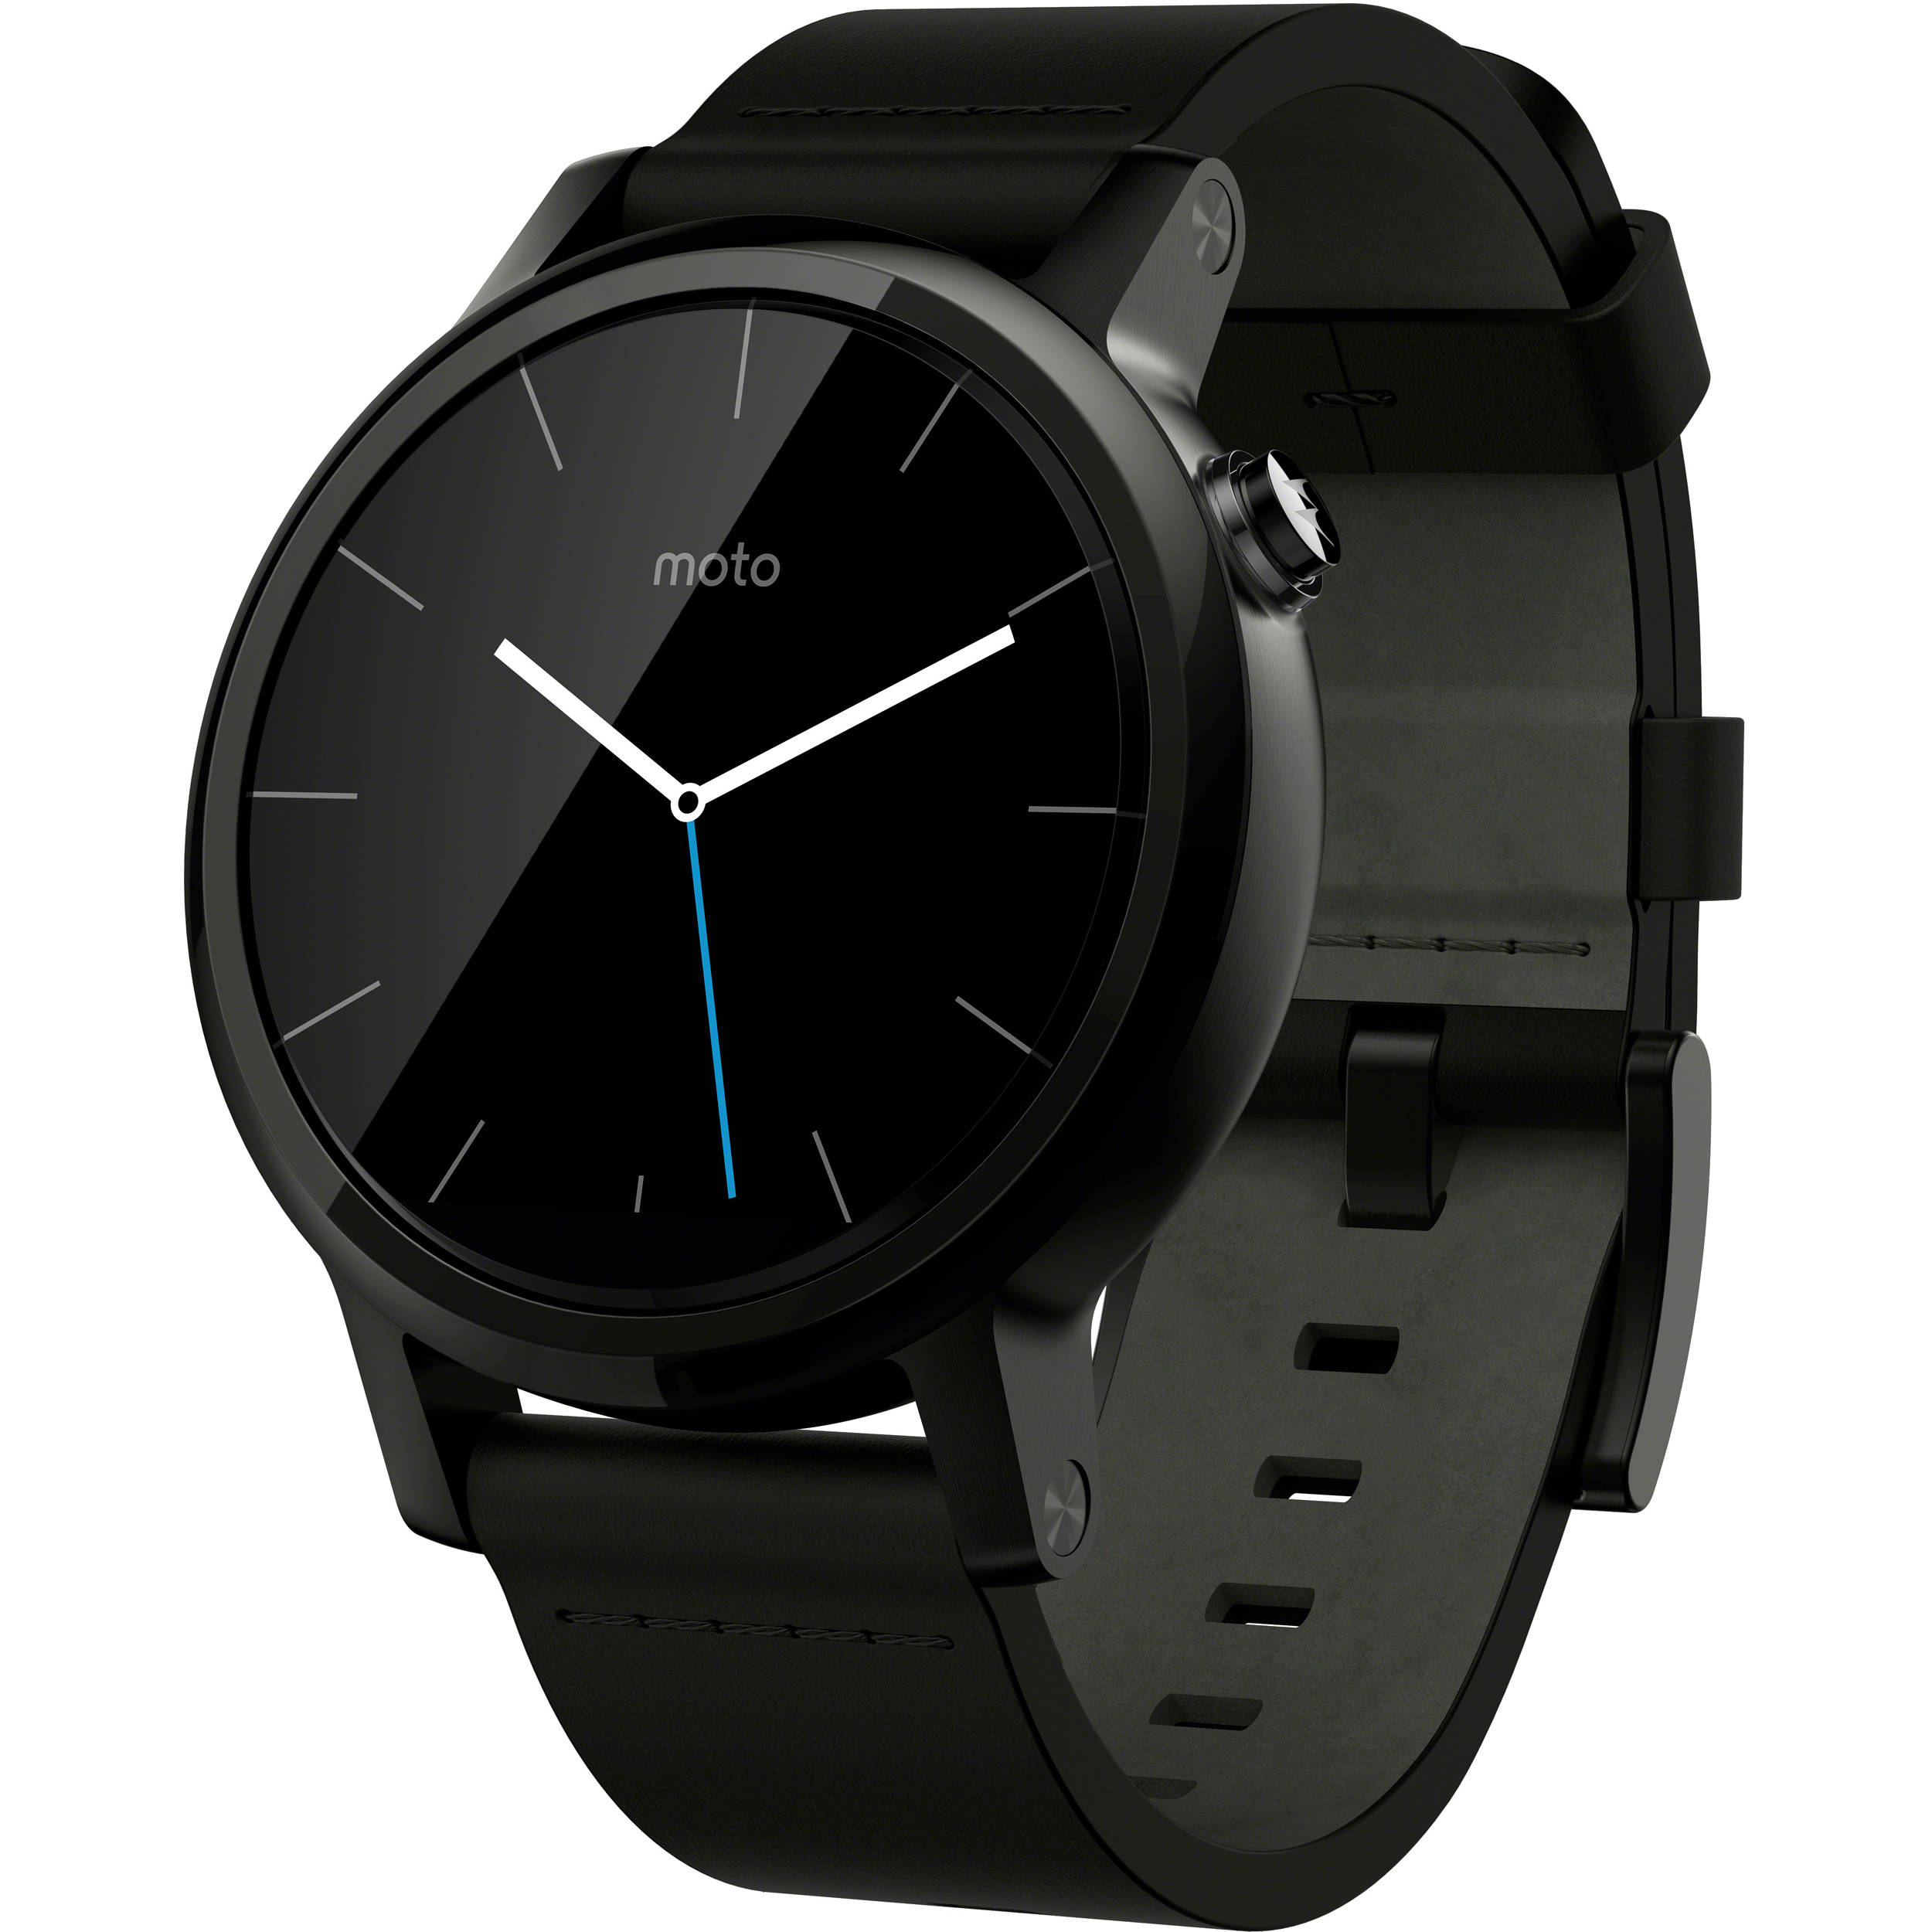 Moto 2nd Gen Black Leather Smartwatch large 1